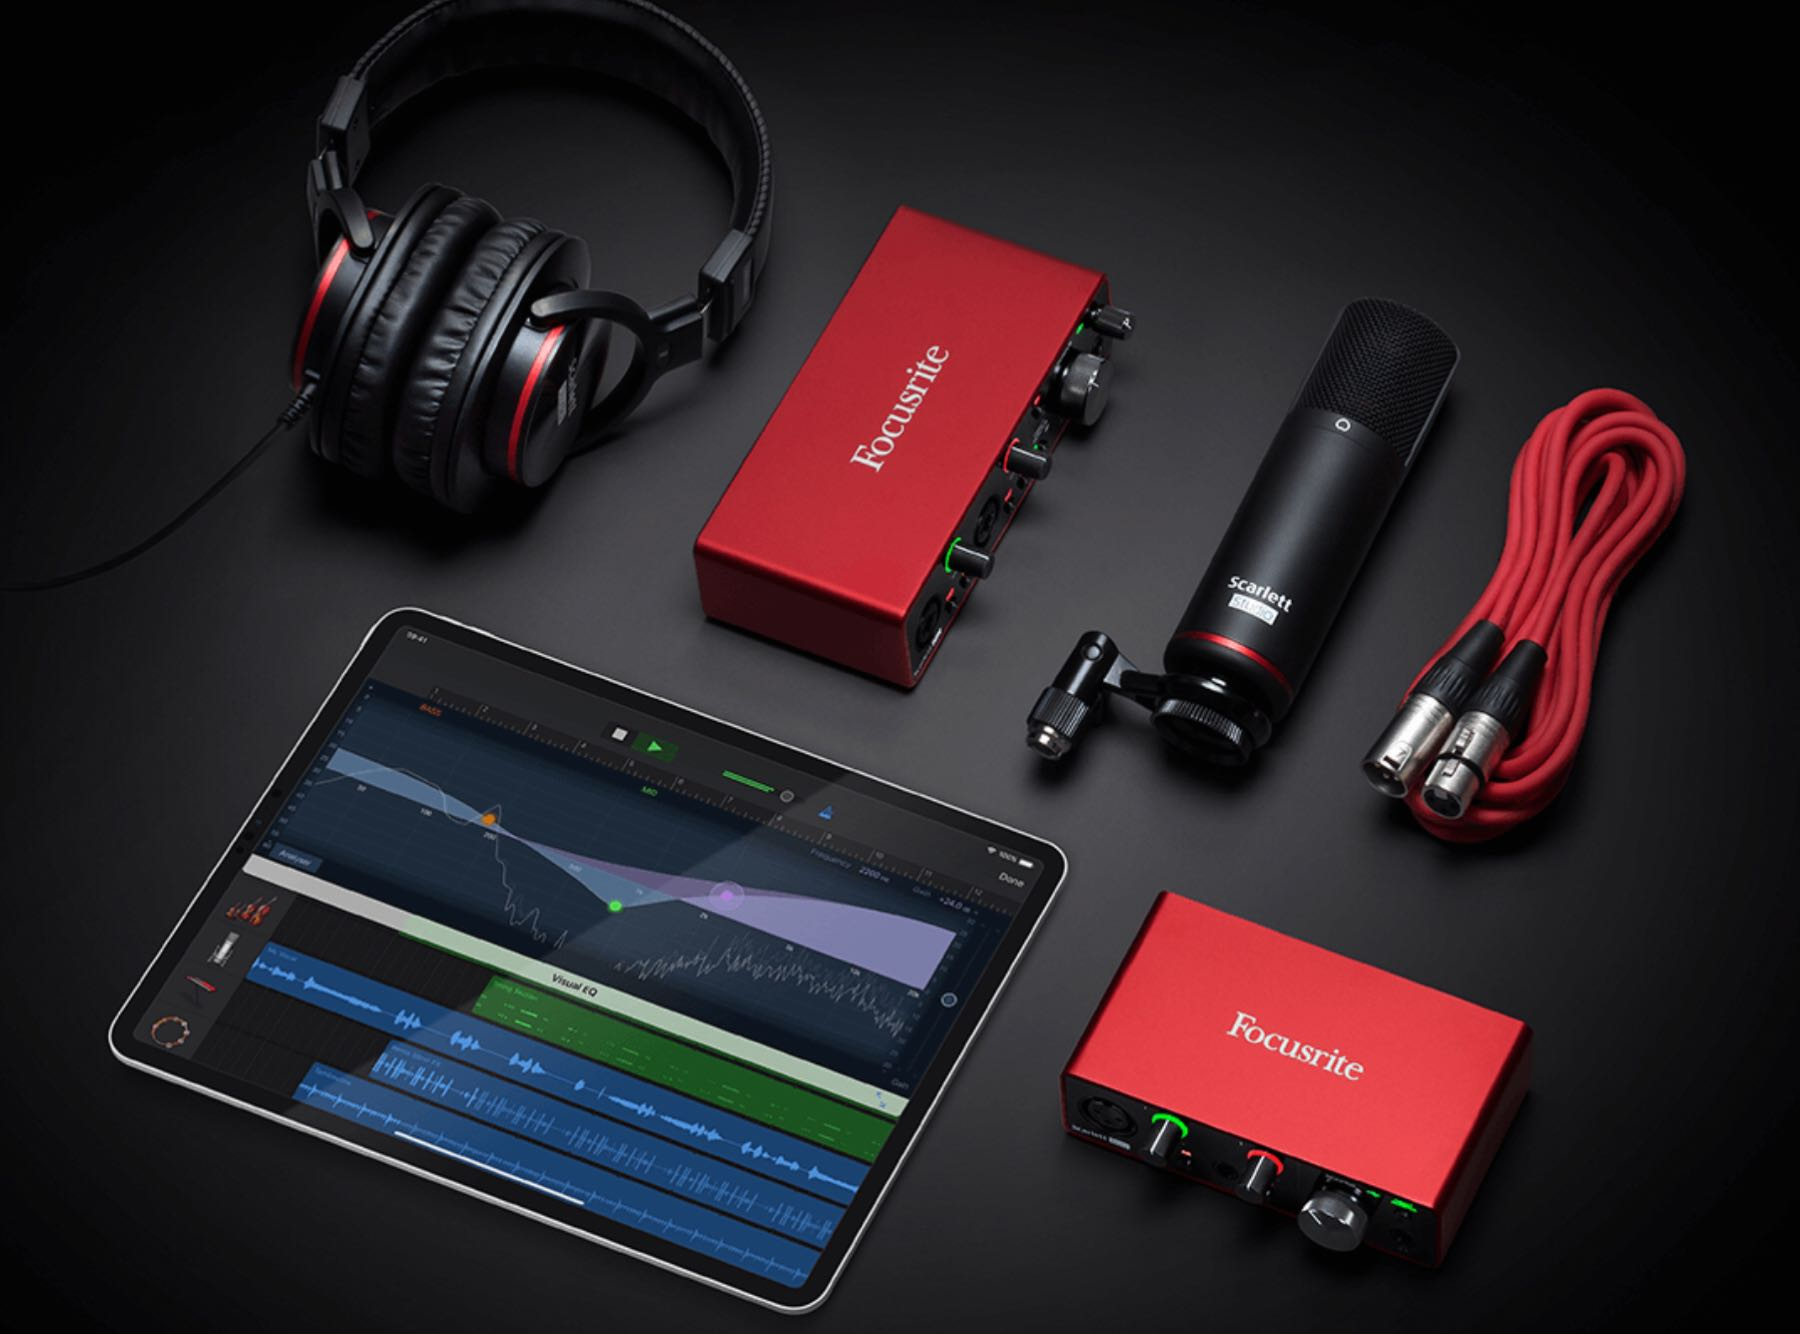 focusrite-scarlett-solo-studio-usb-audio-interface-recording-bundle-ipad